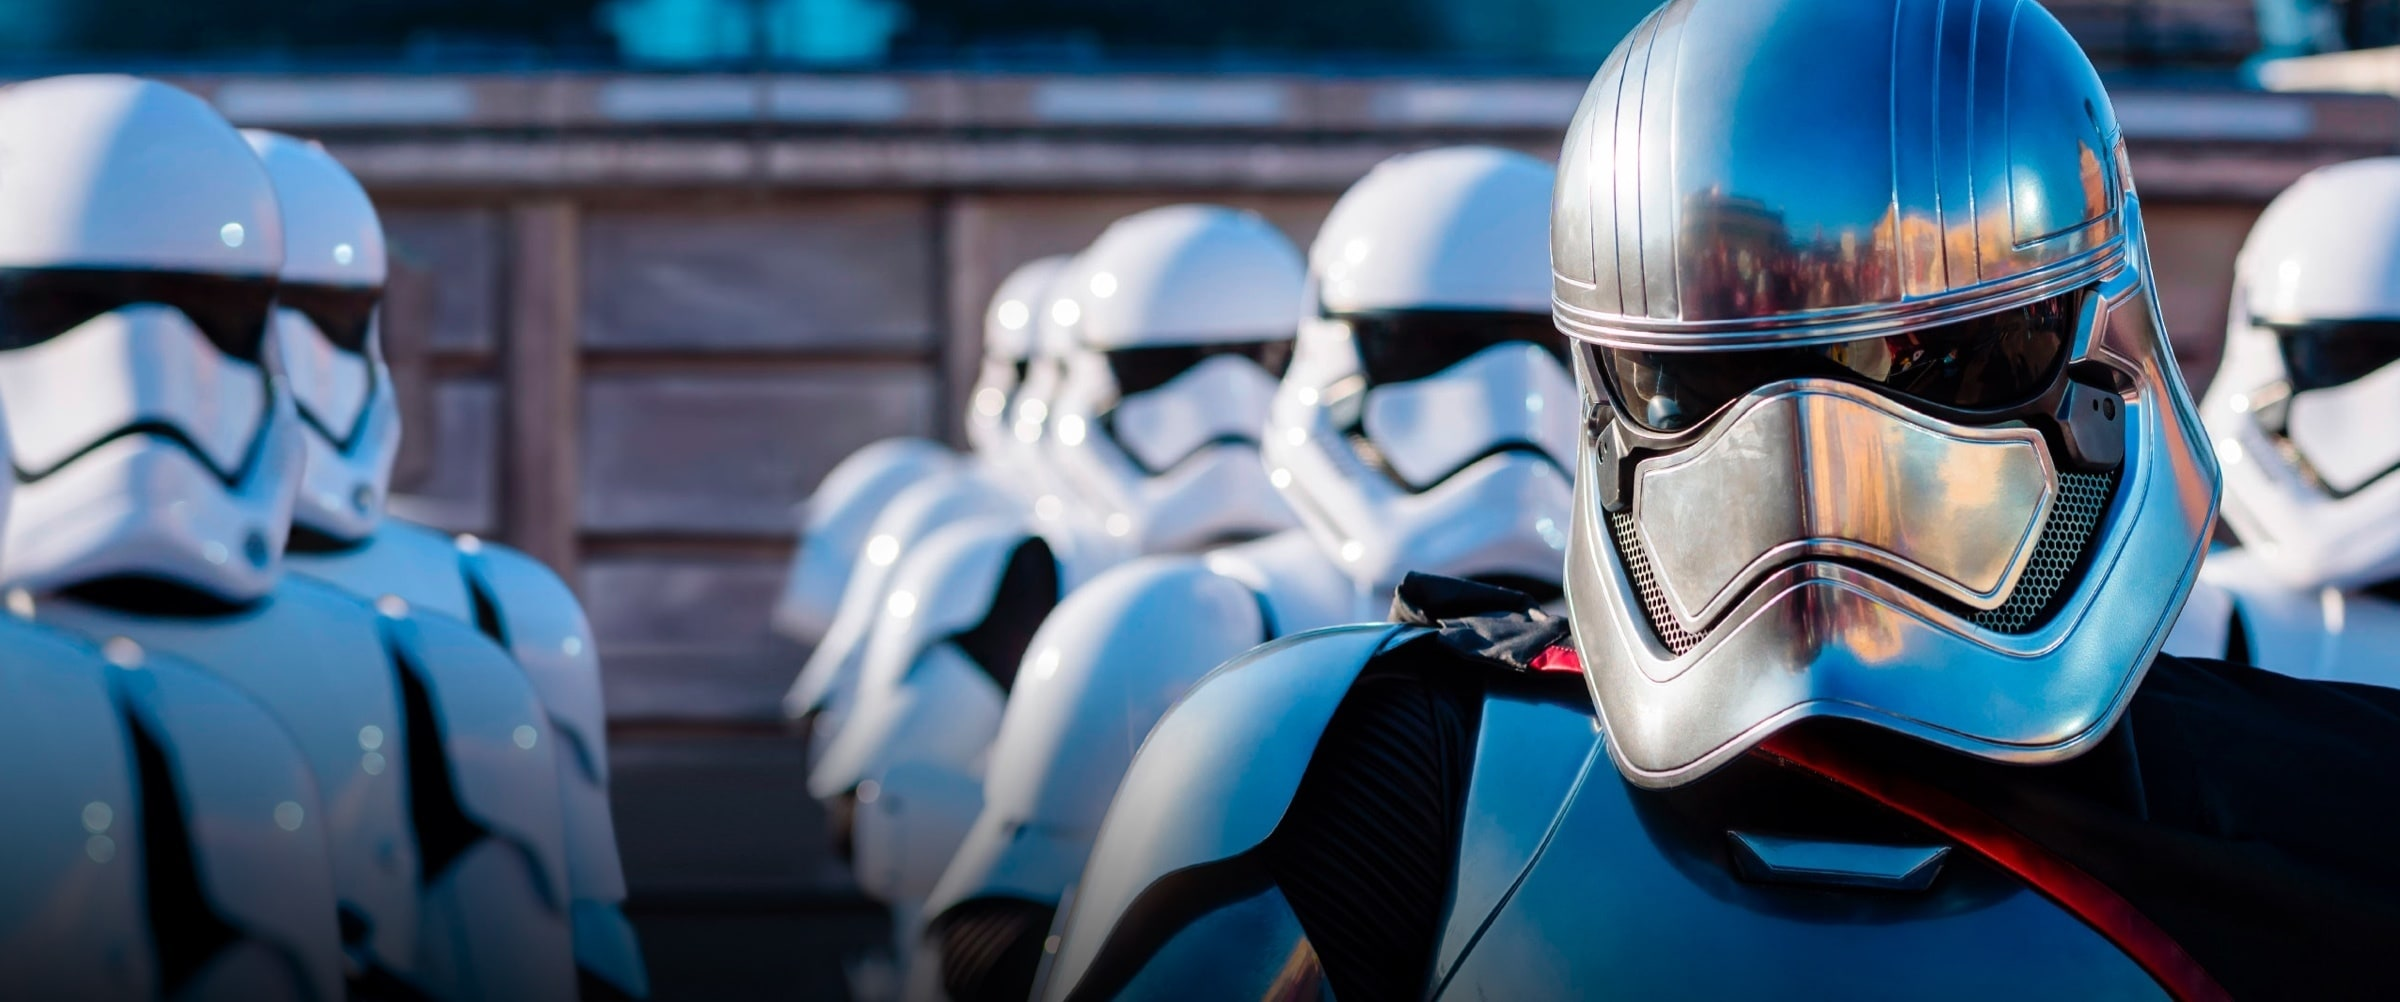 Disneyland Paris | Season of the Force